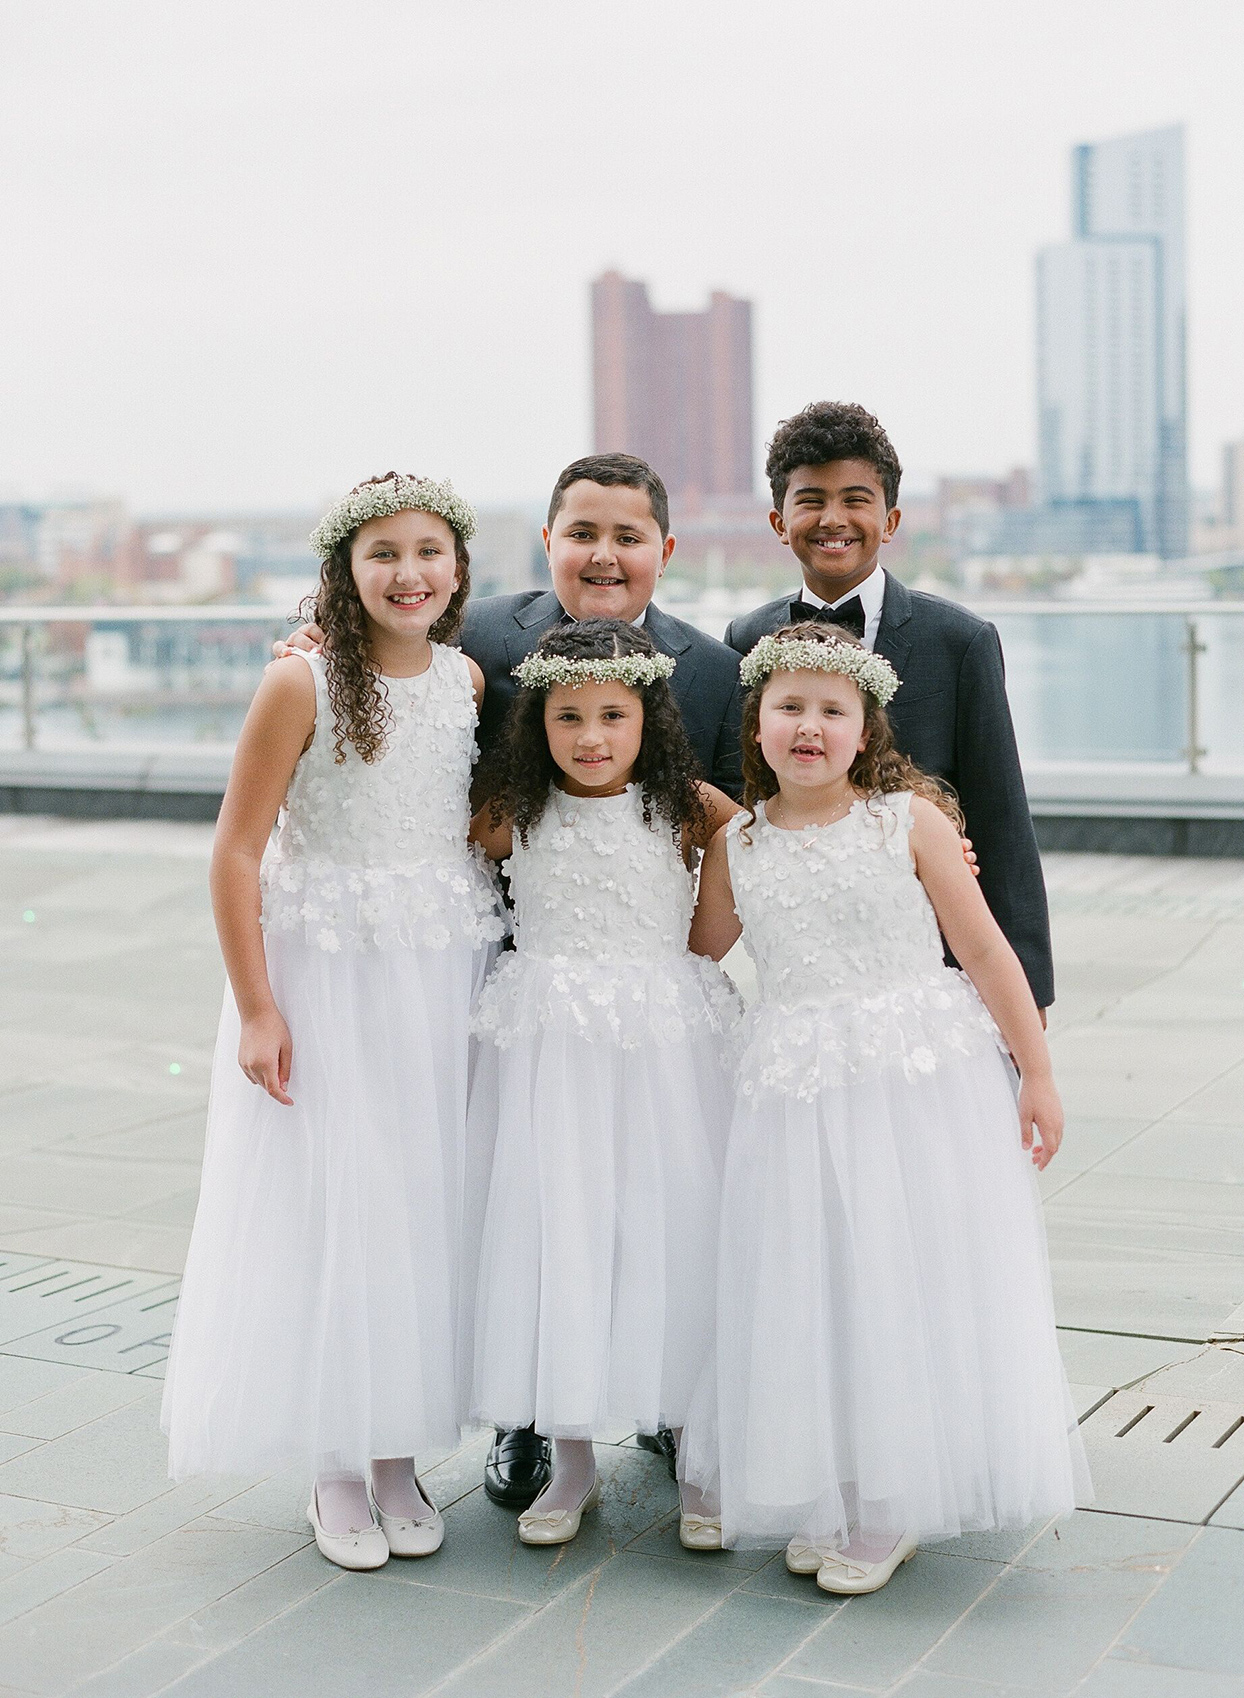 girls dressed in white and boys dressed in black for wedding